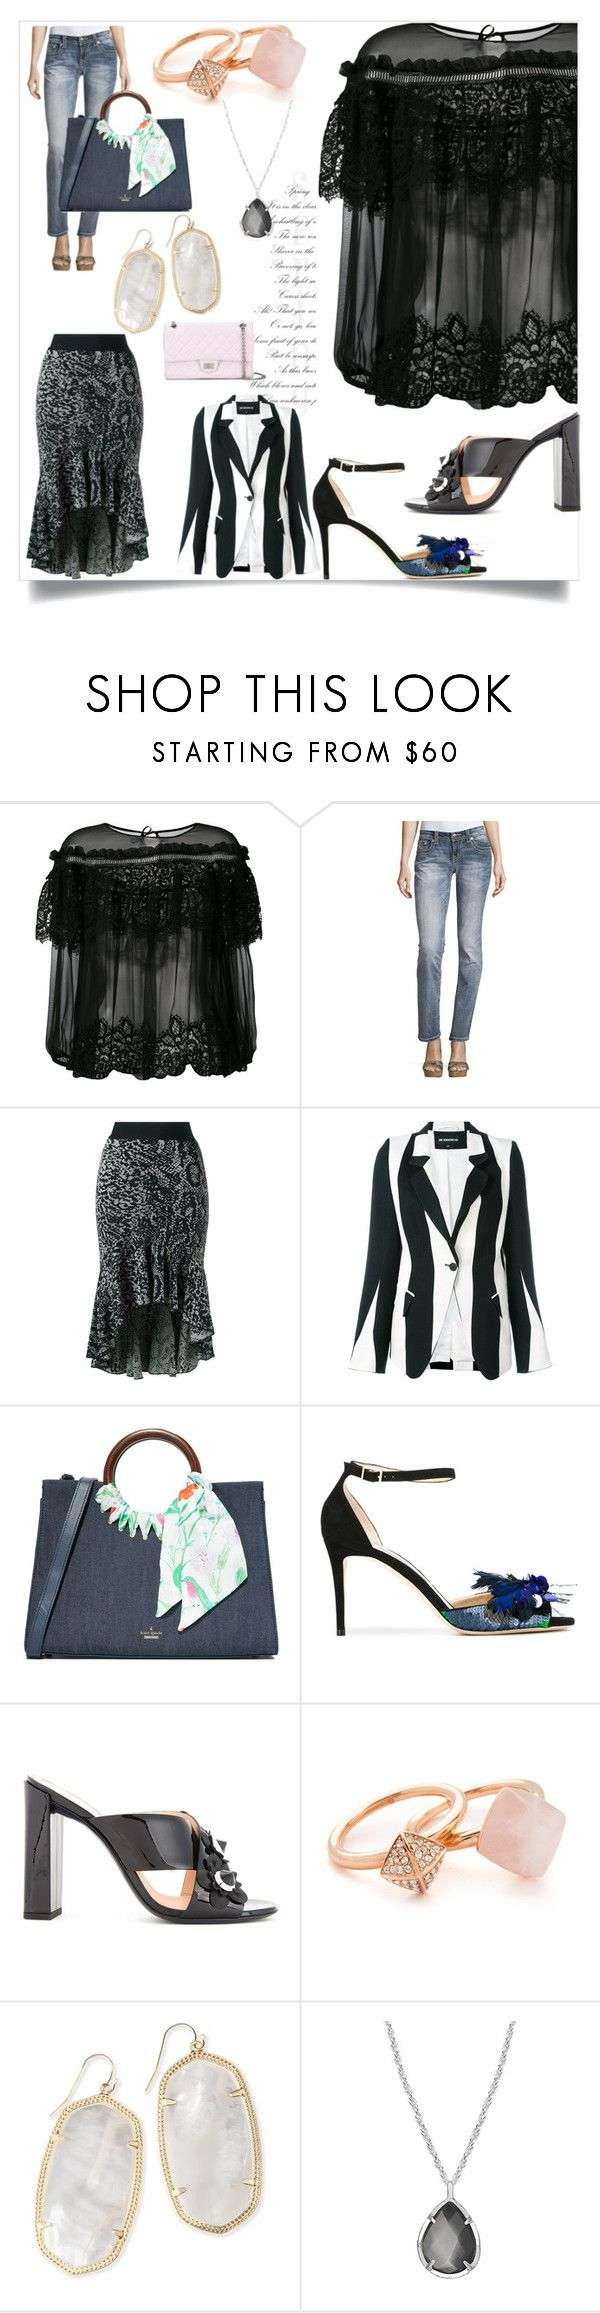 """Modalist Style"" by denisee-denisee ❤ liked on Polyvore featuring Alberta Ferretti, Miss Me, Cecilia Pradomurion, Ann Demeulemeester, Kate Spade, Jimmy Choo, Fendi, Michael Kors, Kendra Scott and Chanel"